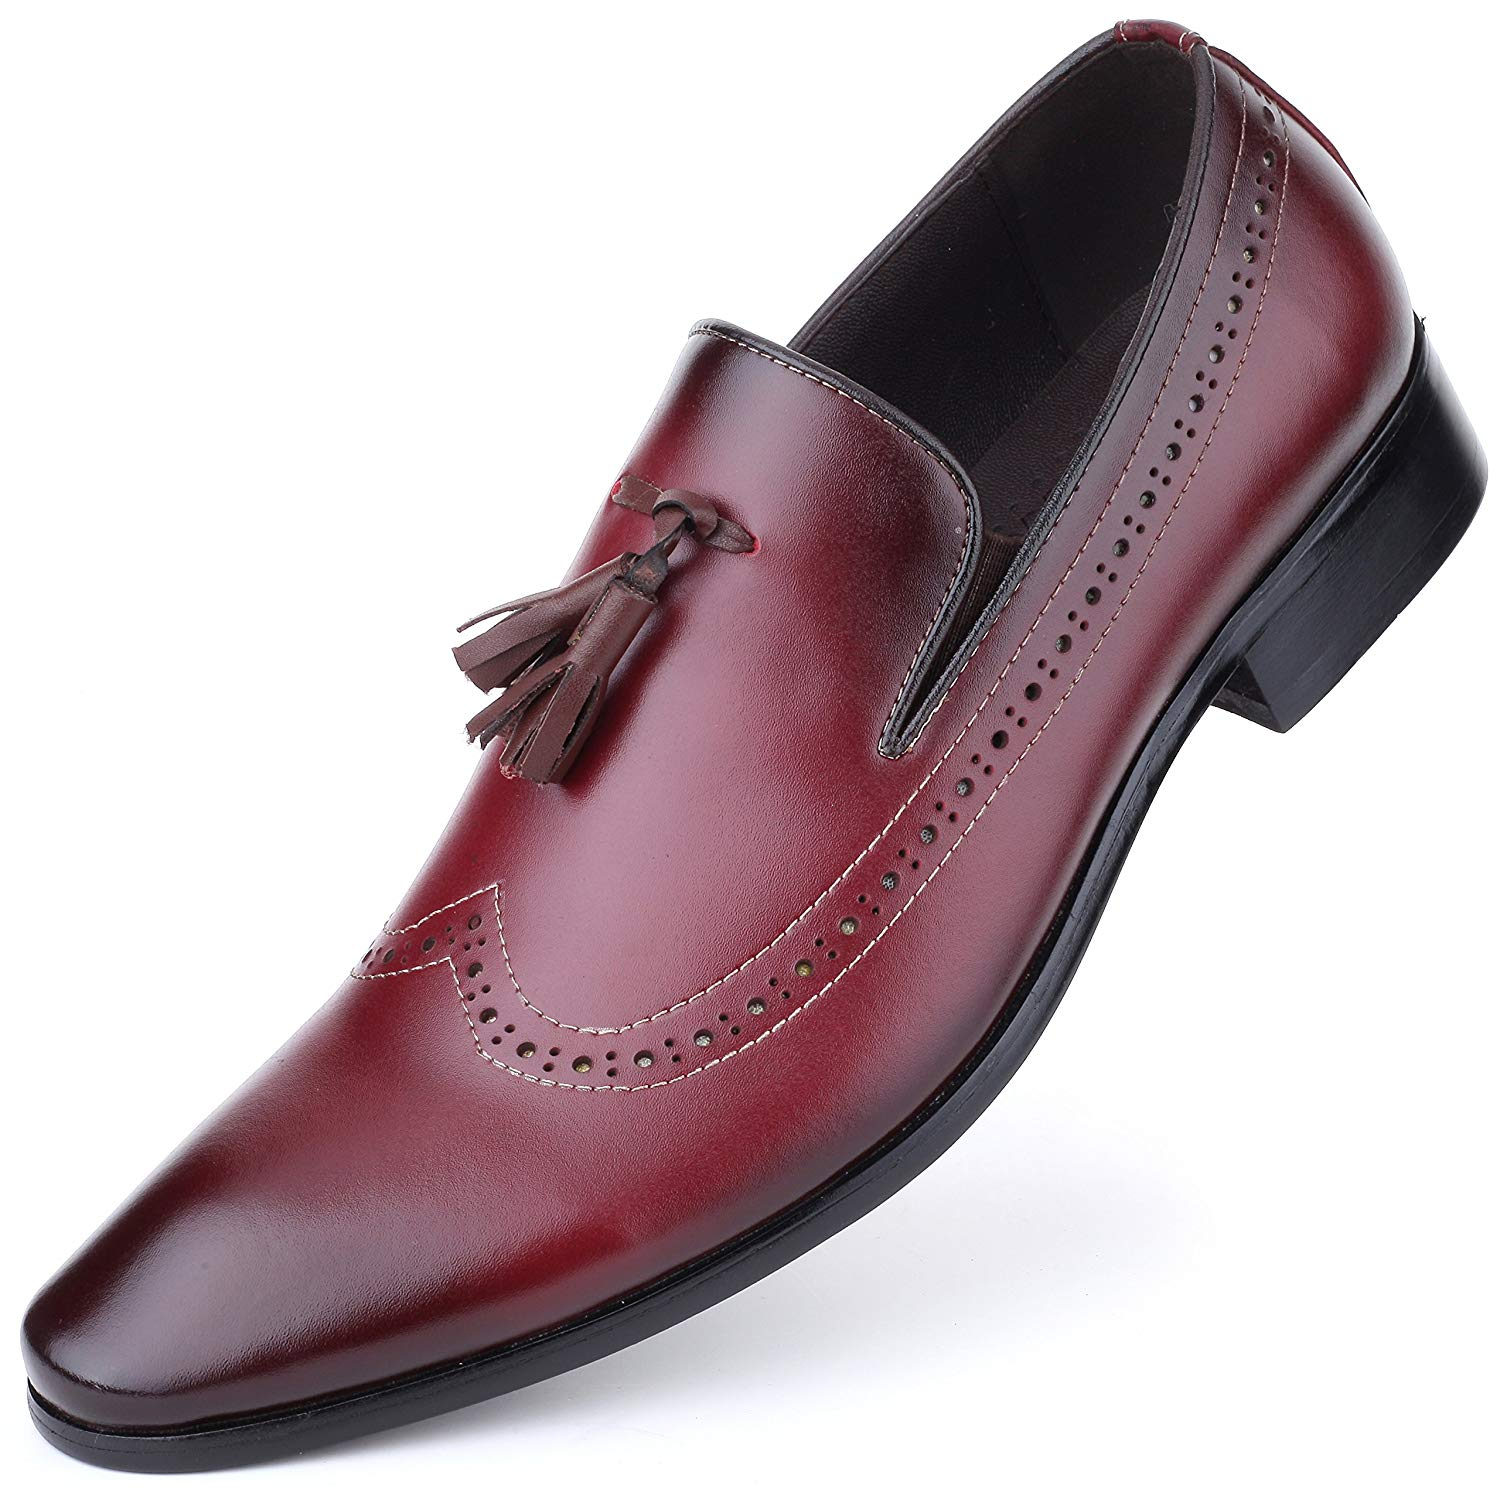 ca84f6abb071 Cheap Tassel Shoes Mens, find Tassel Shoes Mens deals on line at ...